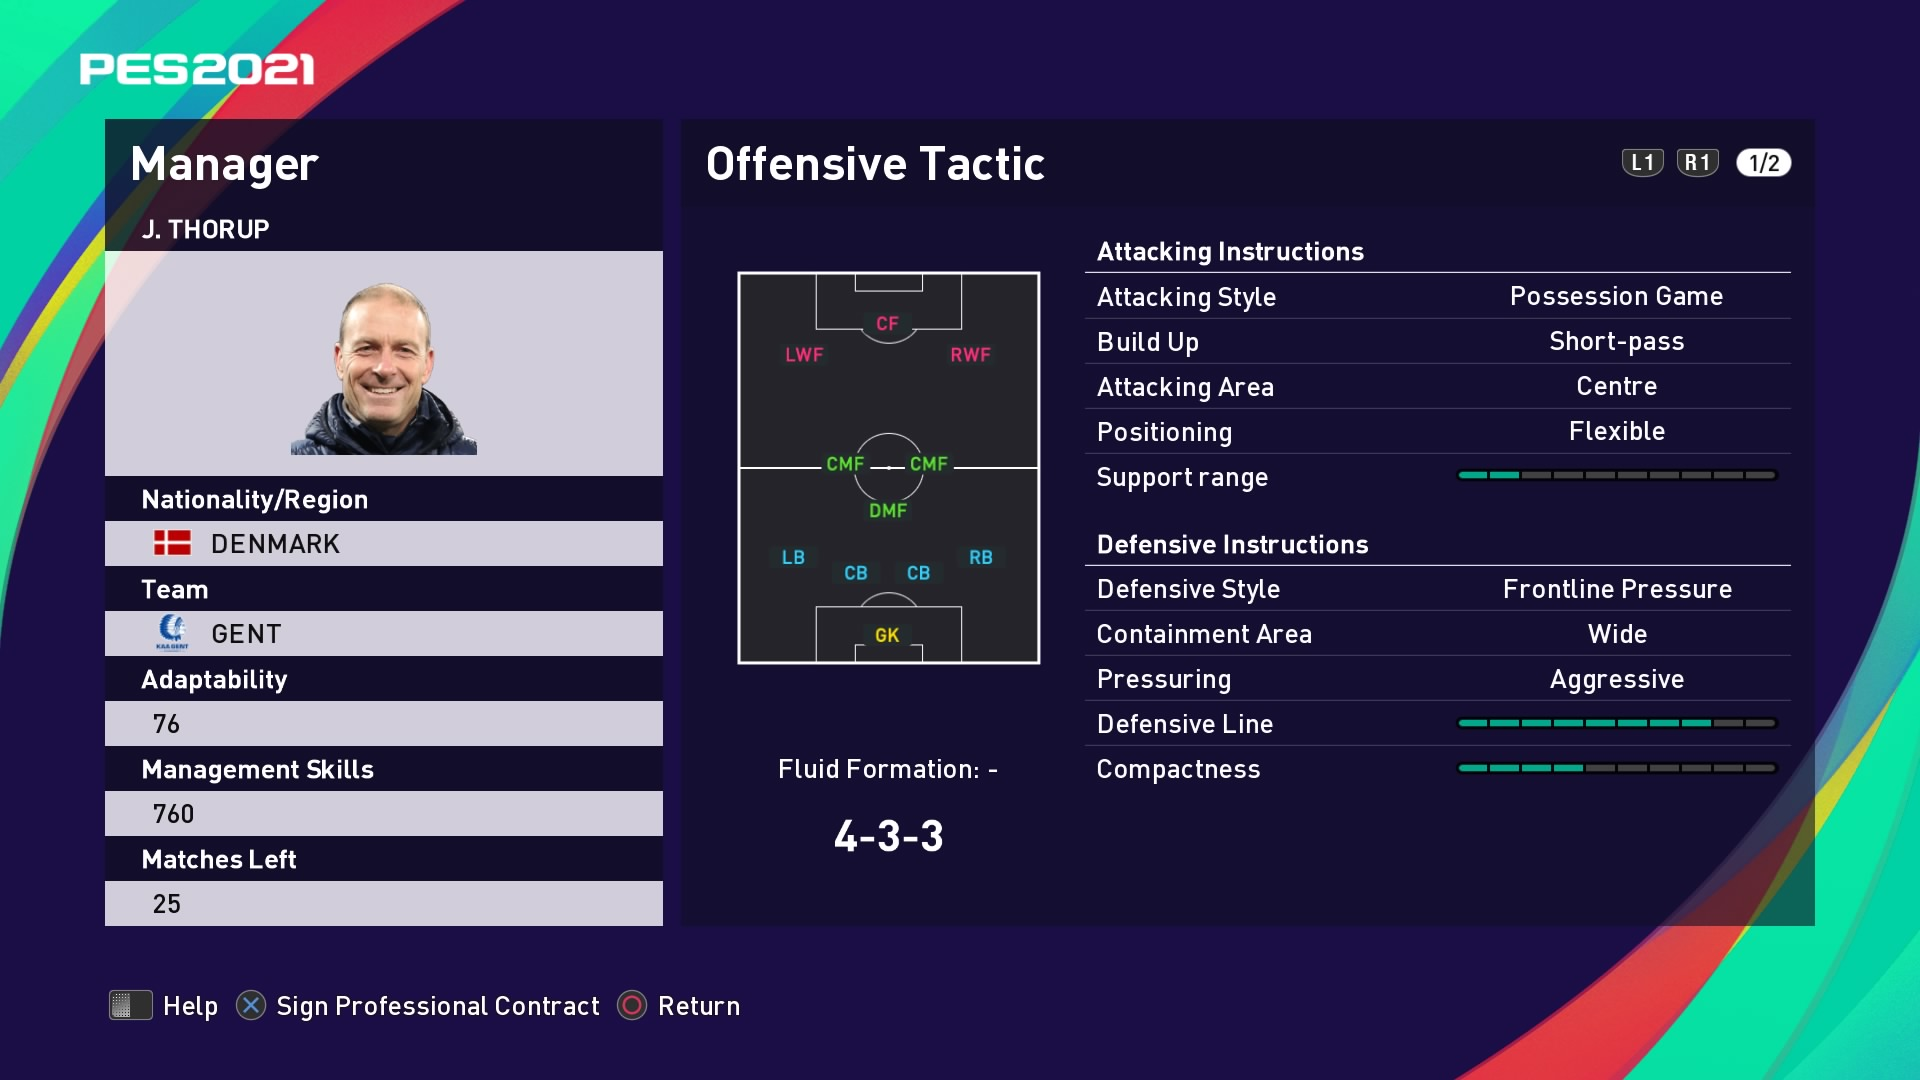 J. Thorup (Jess Thorup) Offensive Tactic in PES 2021 myClub